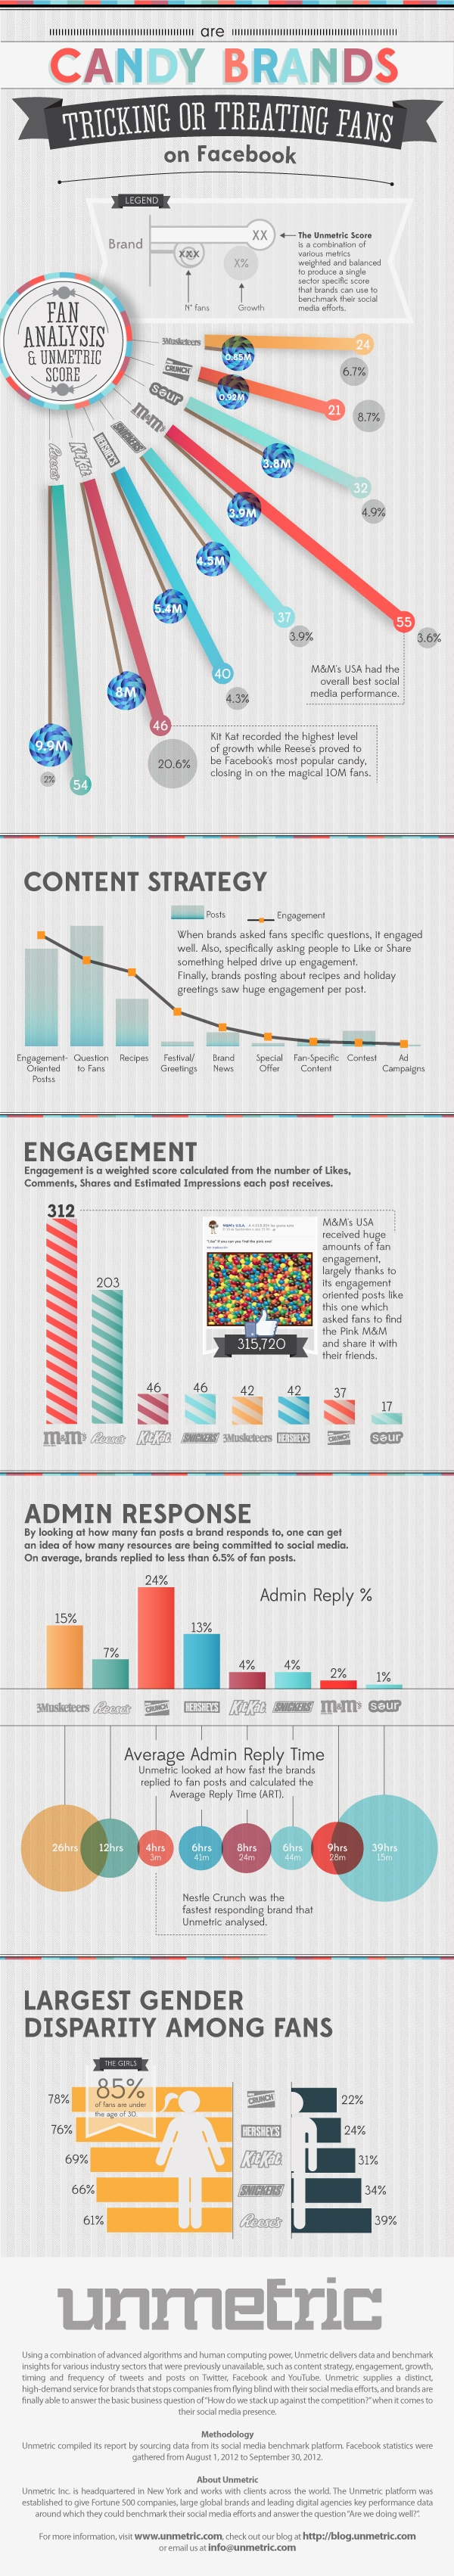 How Candy Brands Market on Social Media